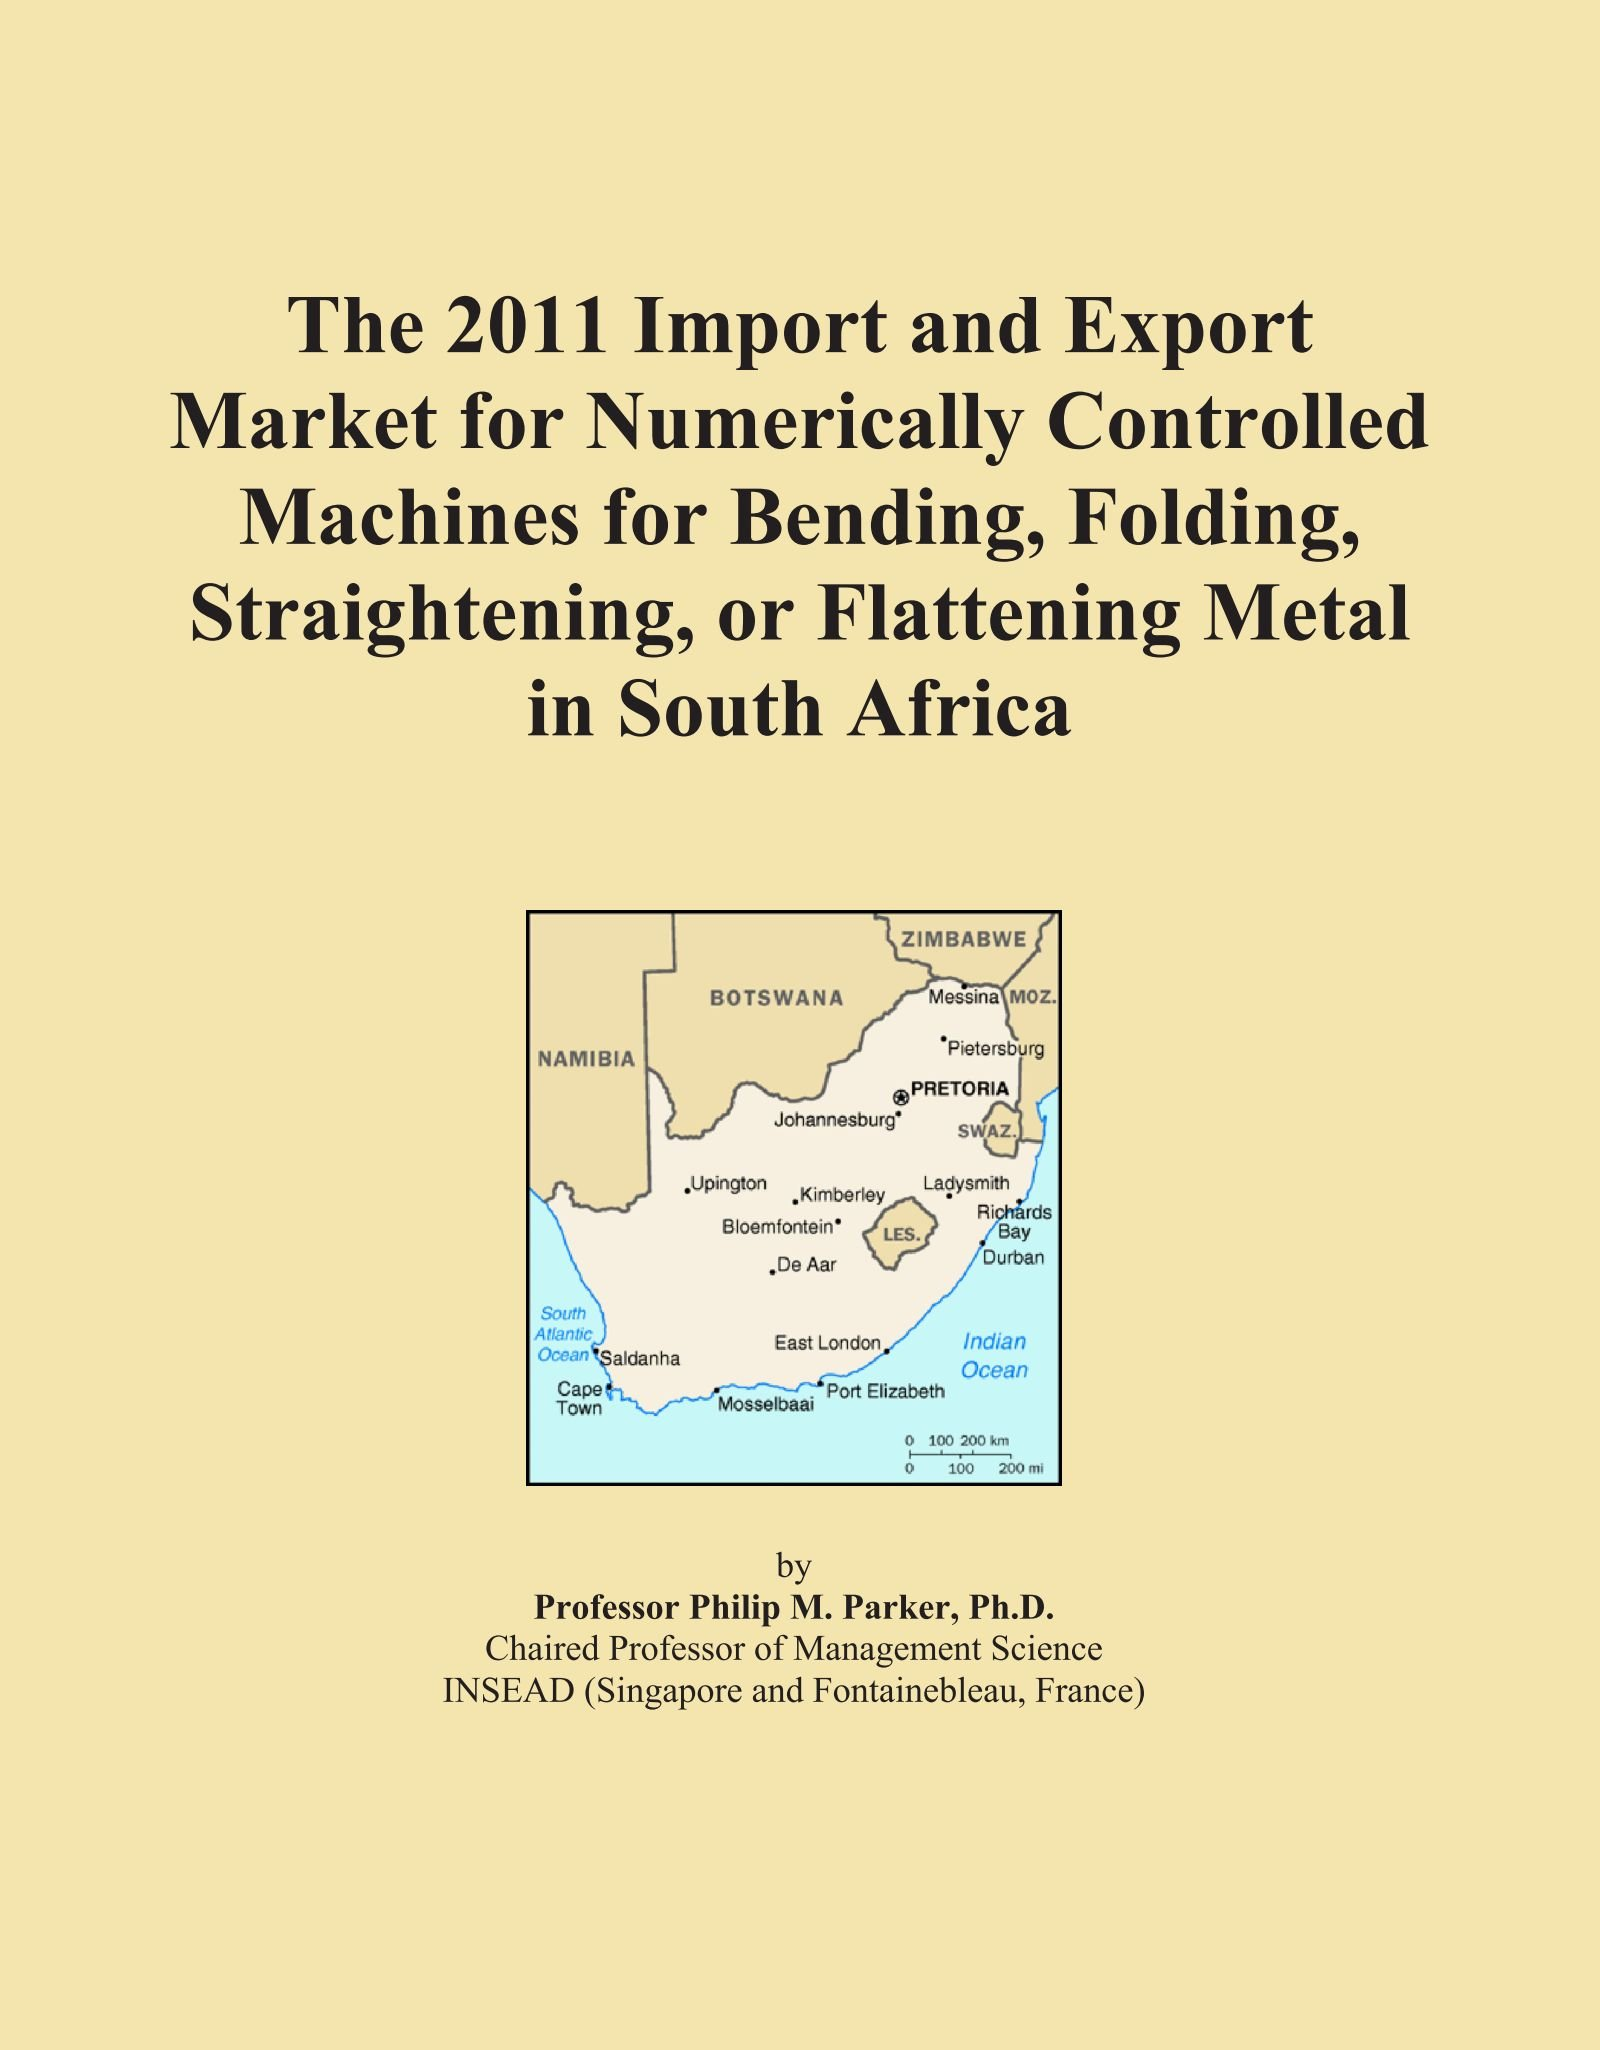 The 2011 Import and Export Market for Numerically Controlled Machines for Bending, Folding, Straightening, or Flattening Metal in South Africa ebook